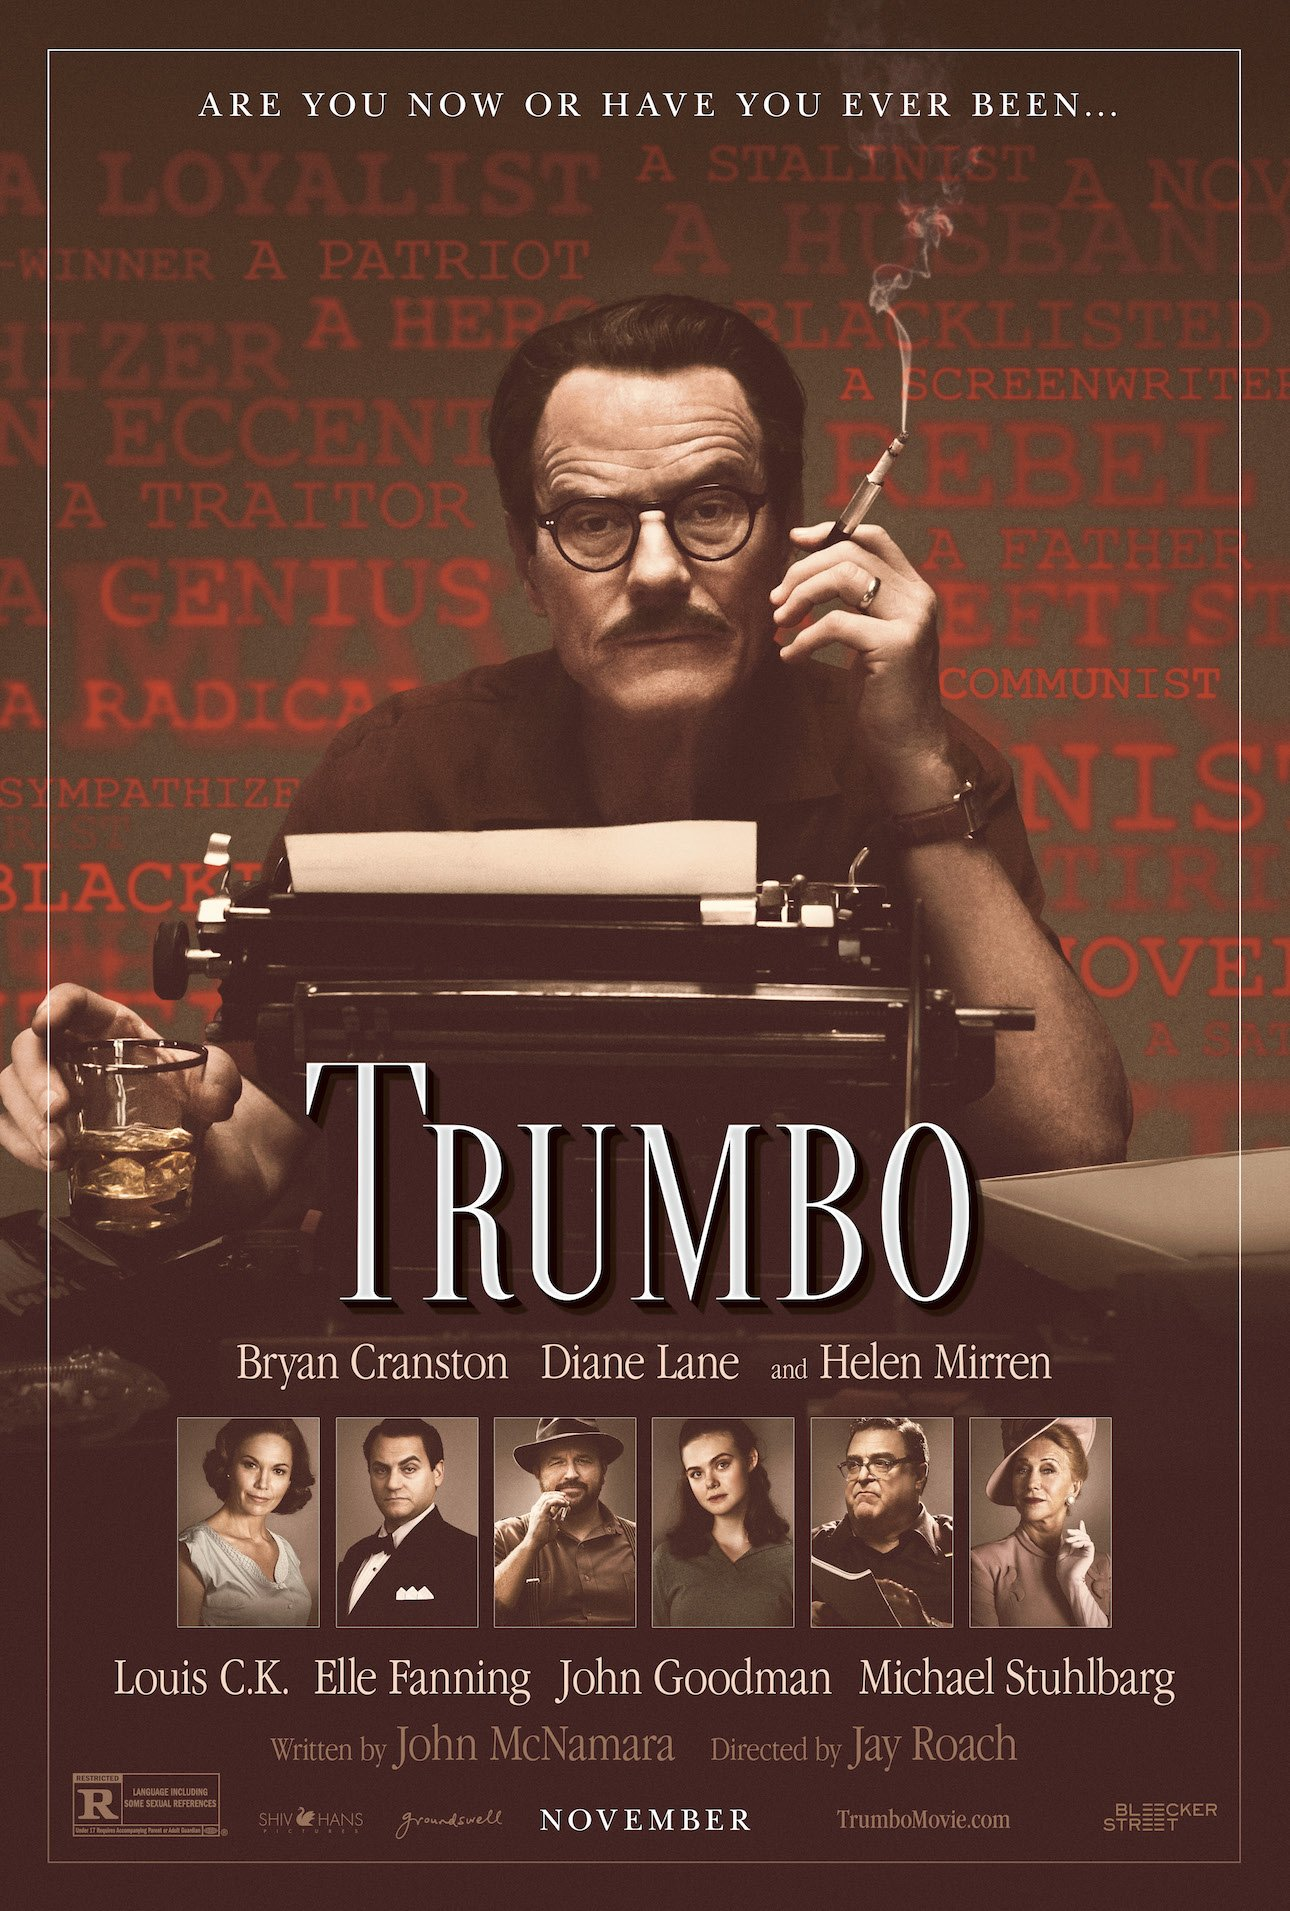 Trumbo is in cinemas on February 5th - HeadStuff.org